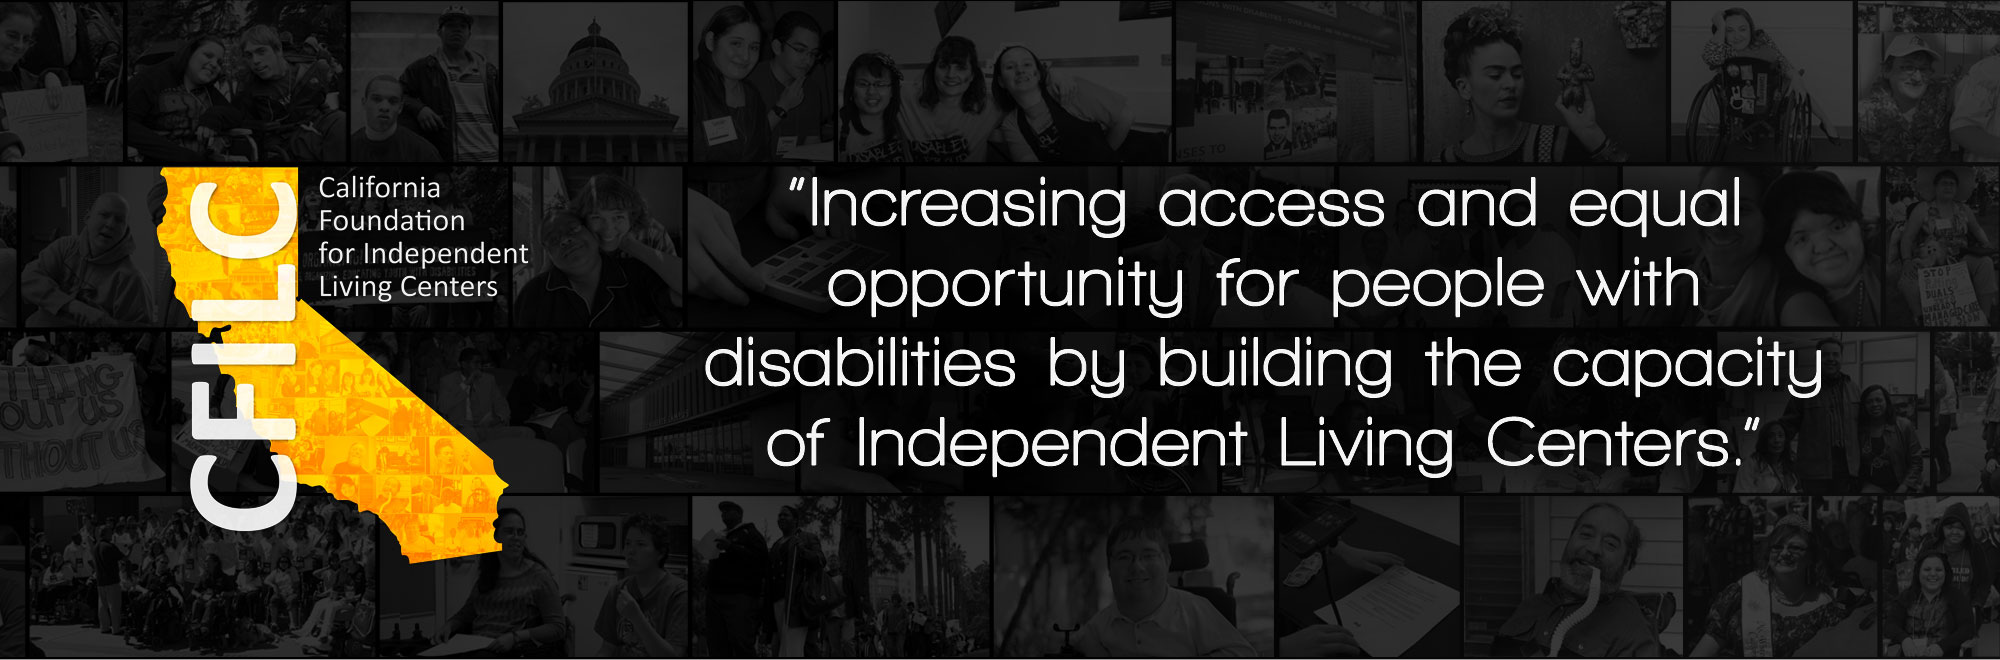 Banner of CFILC Mission: Increasing access and equal opportunity for people with disabilities by building the capacity of Independent Living Centers.